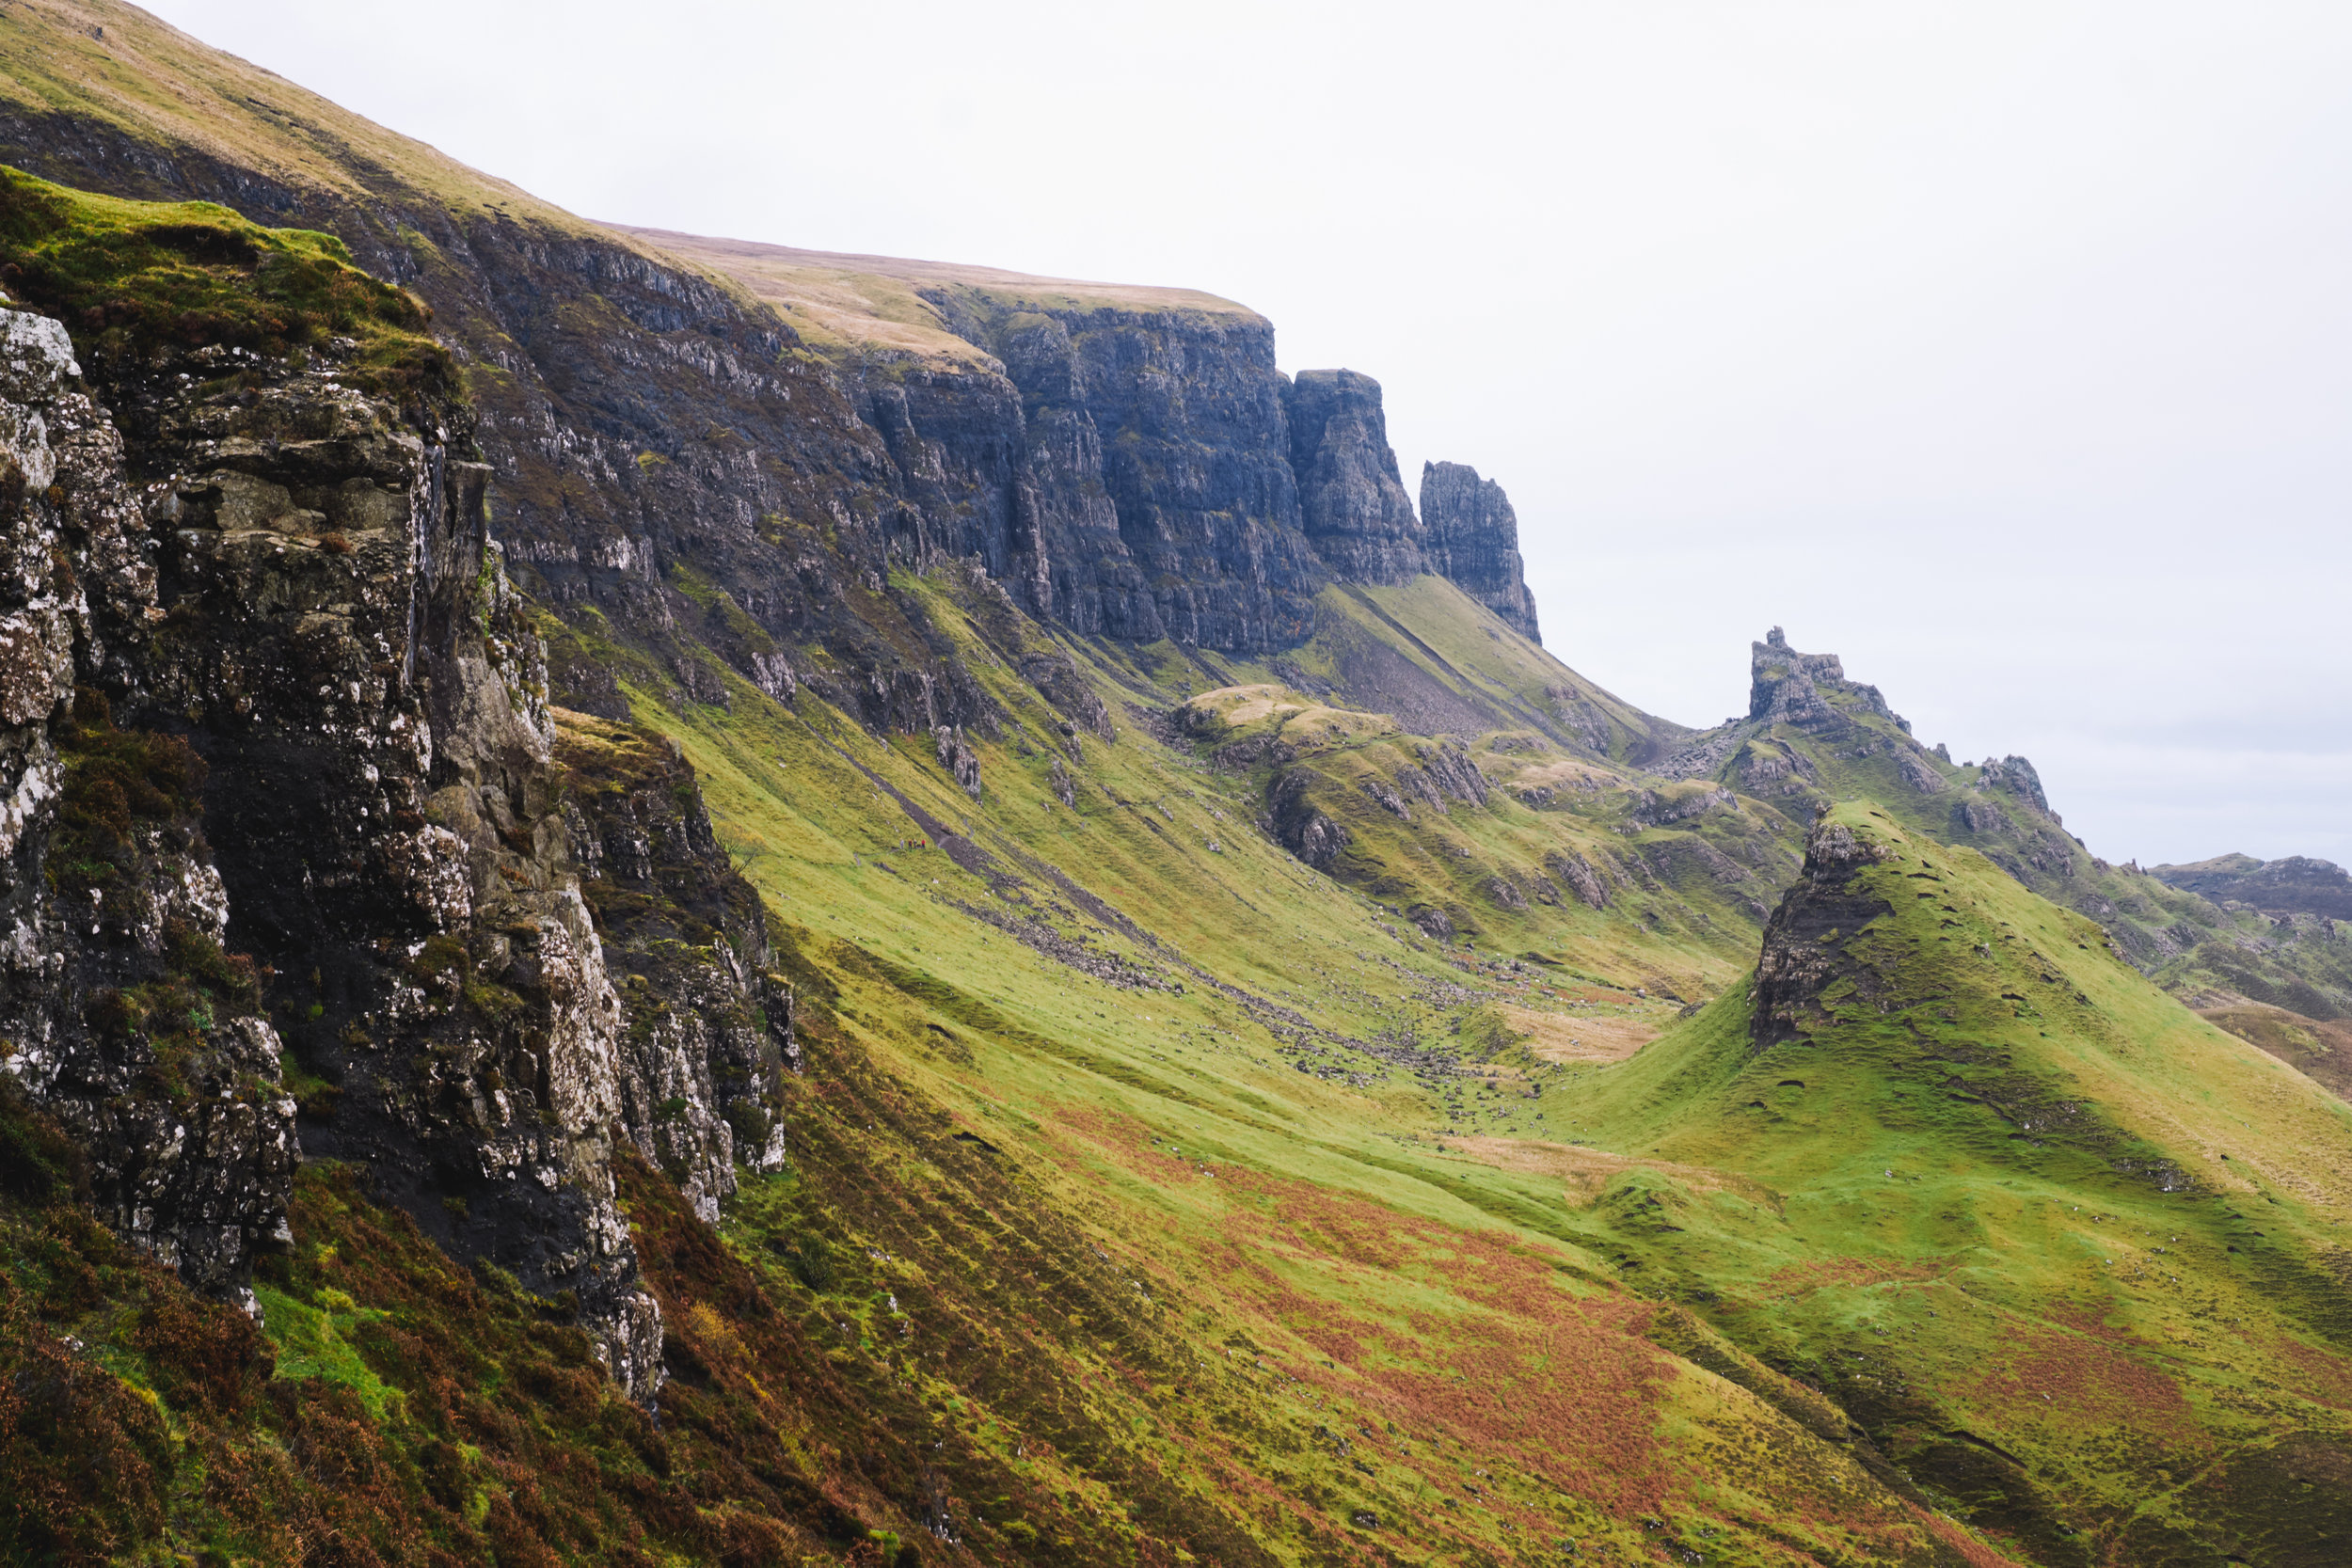 Quiraing and the green hillsides of Isle of Skye in Scotland